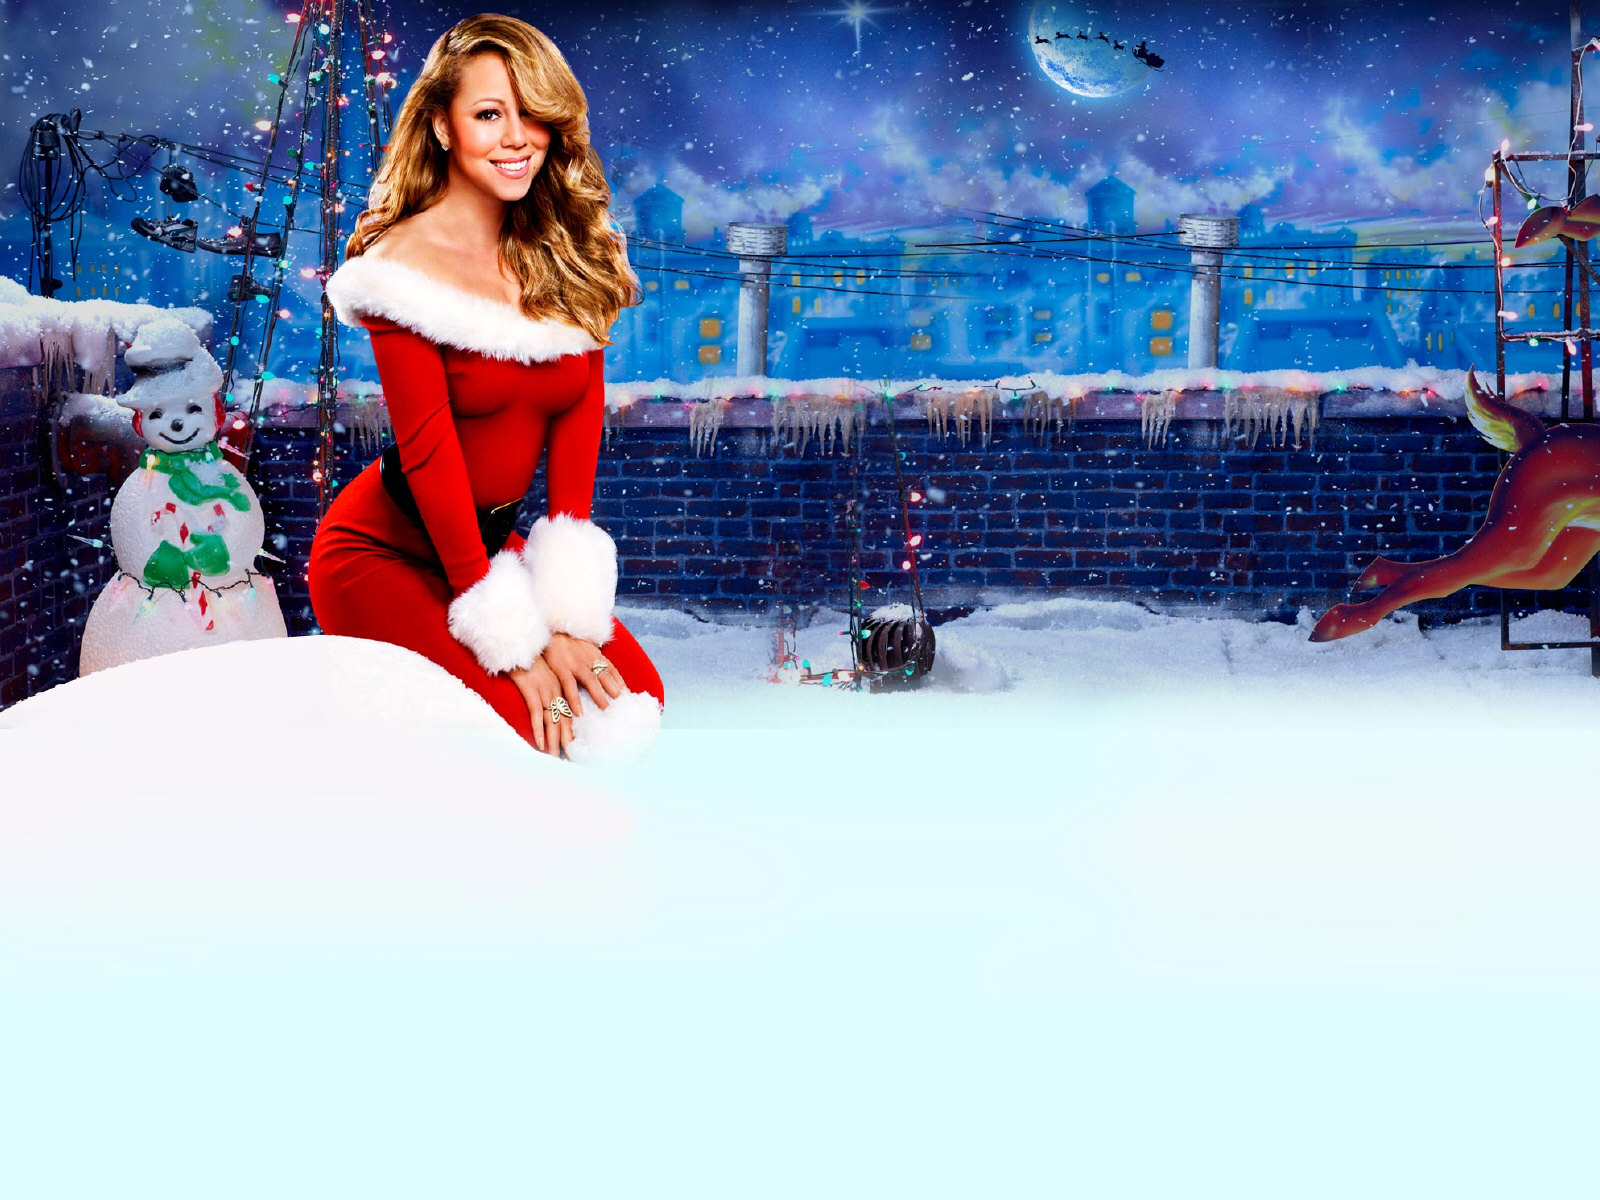 MARIAH CAREY OFFICIAL WALLPAPER